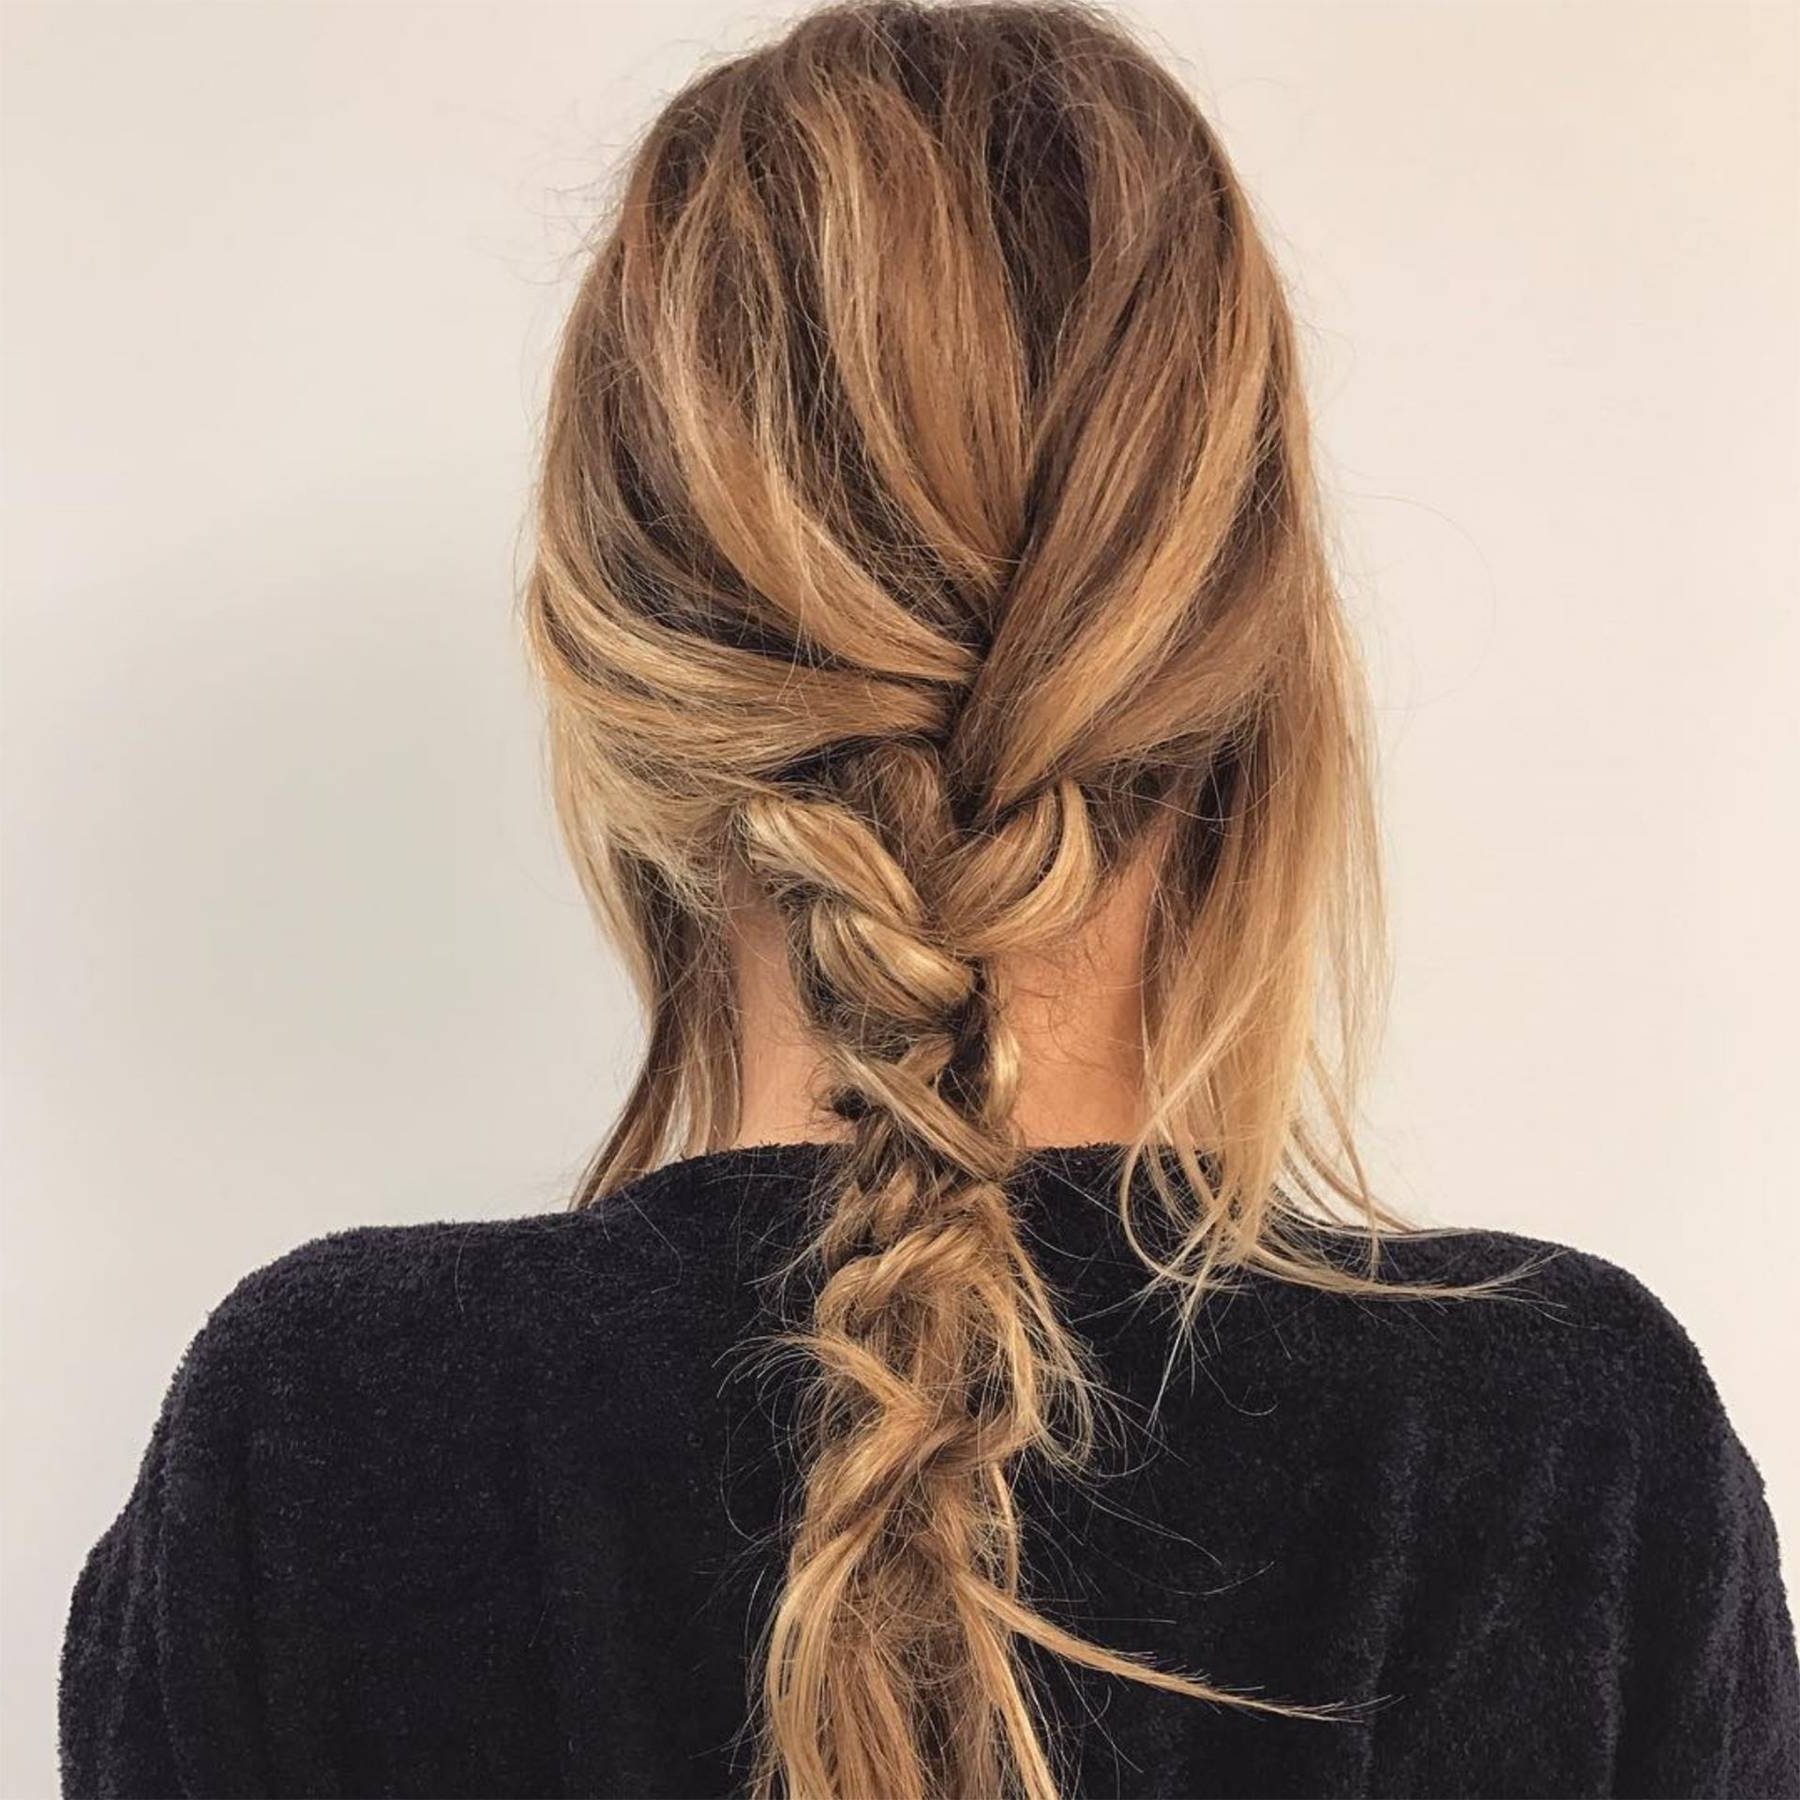 Fashionable Intricate Updo Ponytail Hairstyles For Highlighted Hair Inside Ponytail Hairstyles 2018: Hair Up Ideas (View 6 of 20)